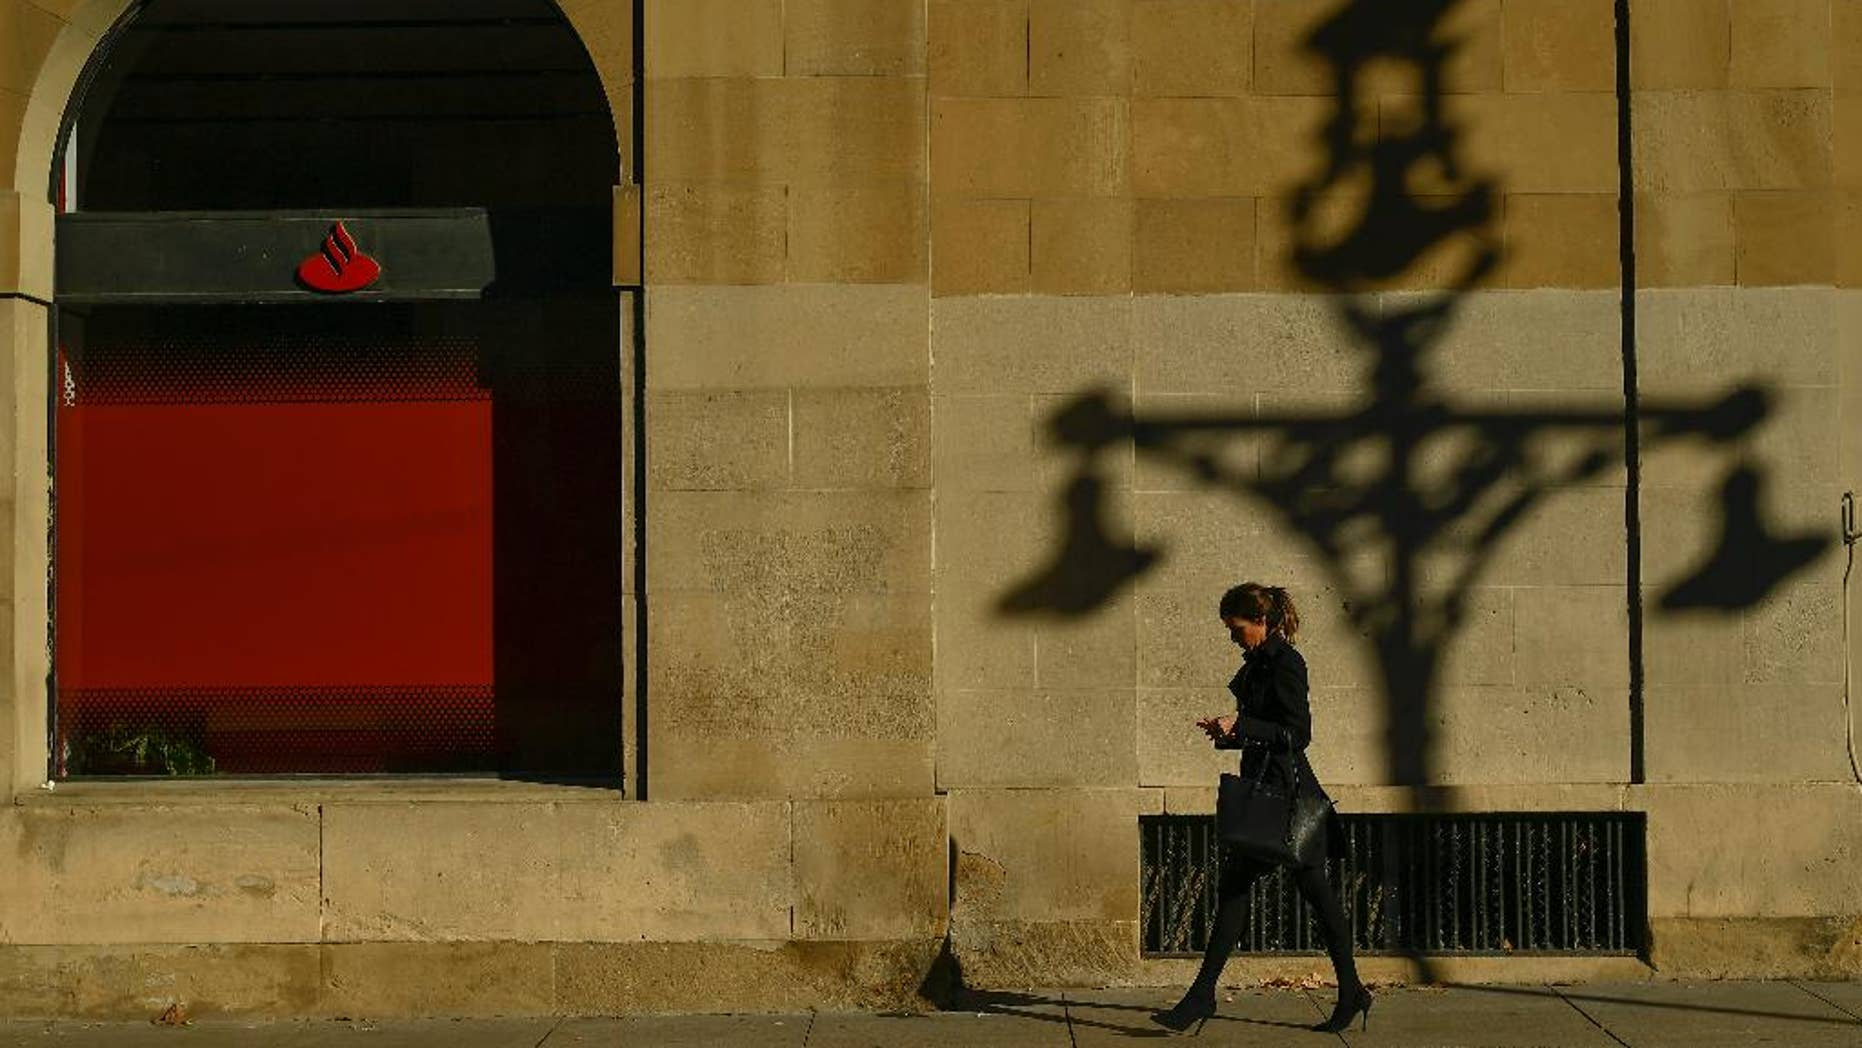 A woman walks past checking her personal phone beside a wall with the shadow of a street light,  during an autumn day, in Pamplona northern Spain, Thursday, Dec. 1, 2016. (AP Photo/Alvaro Barrientos)